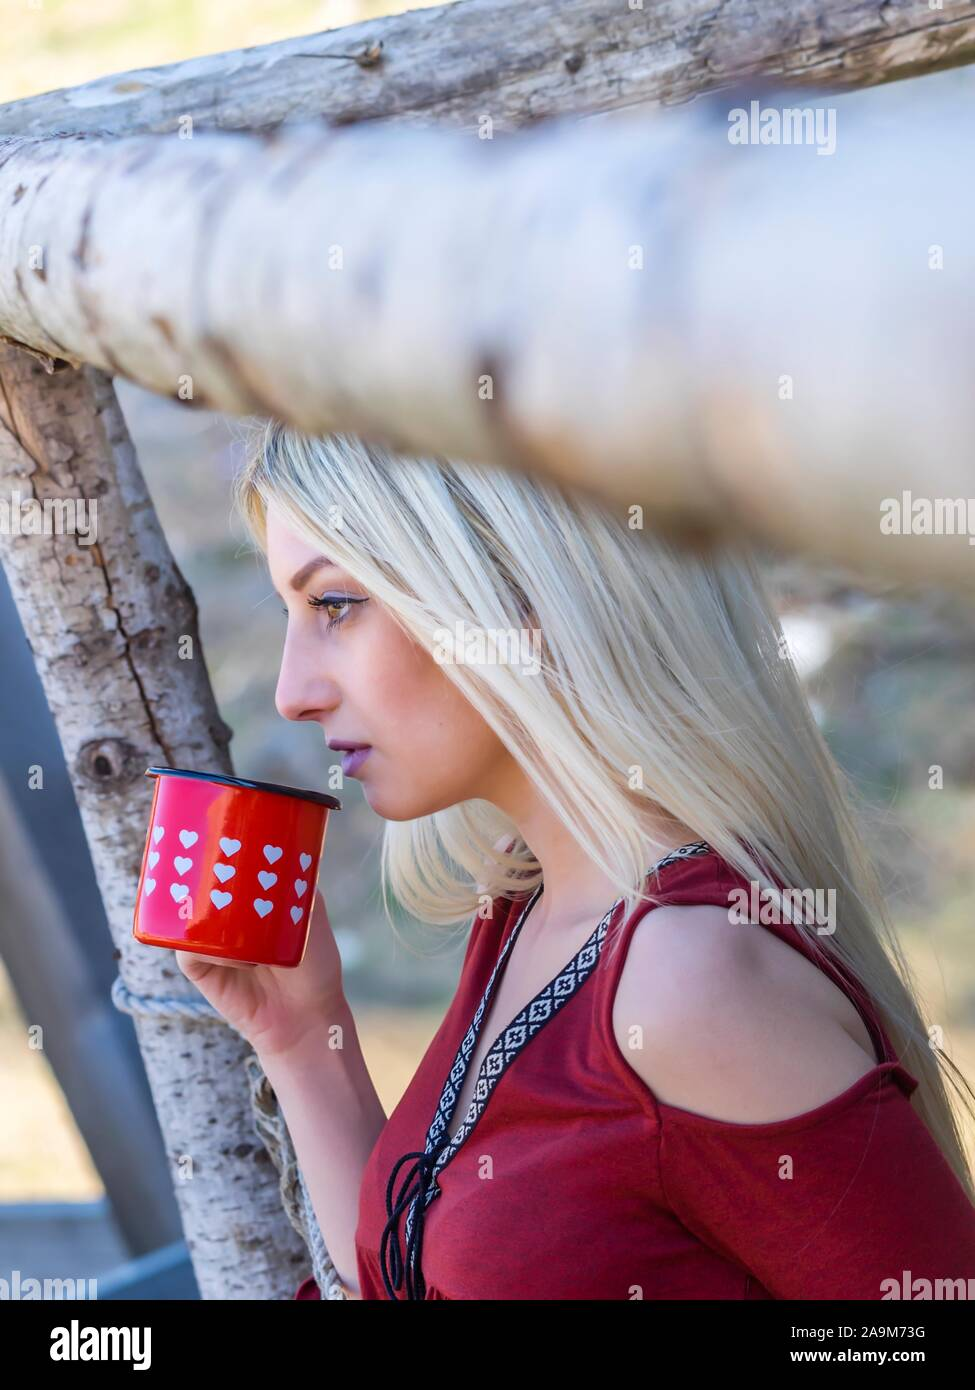 Young woman blonde drinking beverage from Red with hearts mug Stock Photo